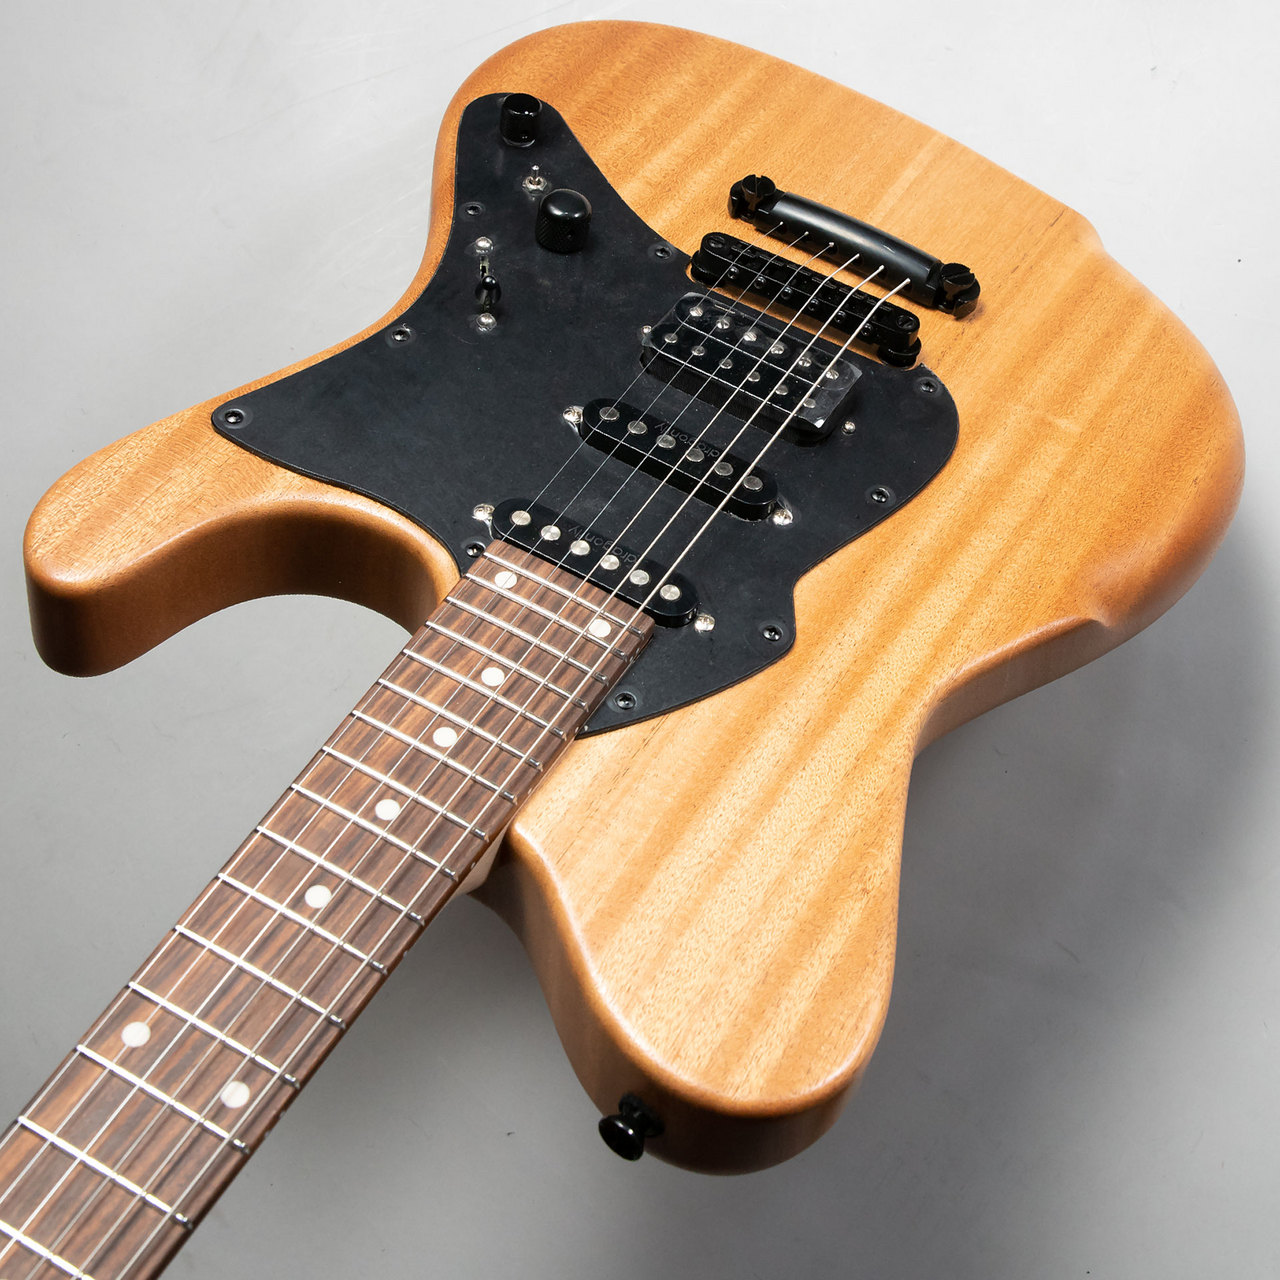 d-fly BD666 AFRICAN MAHOGANY 2P SSHのケース・その他画像